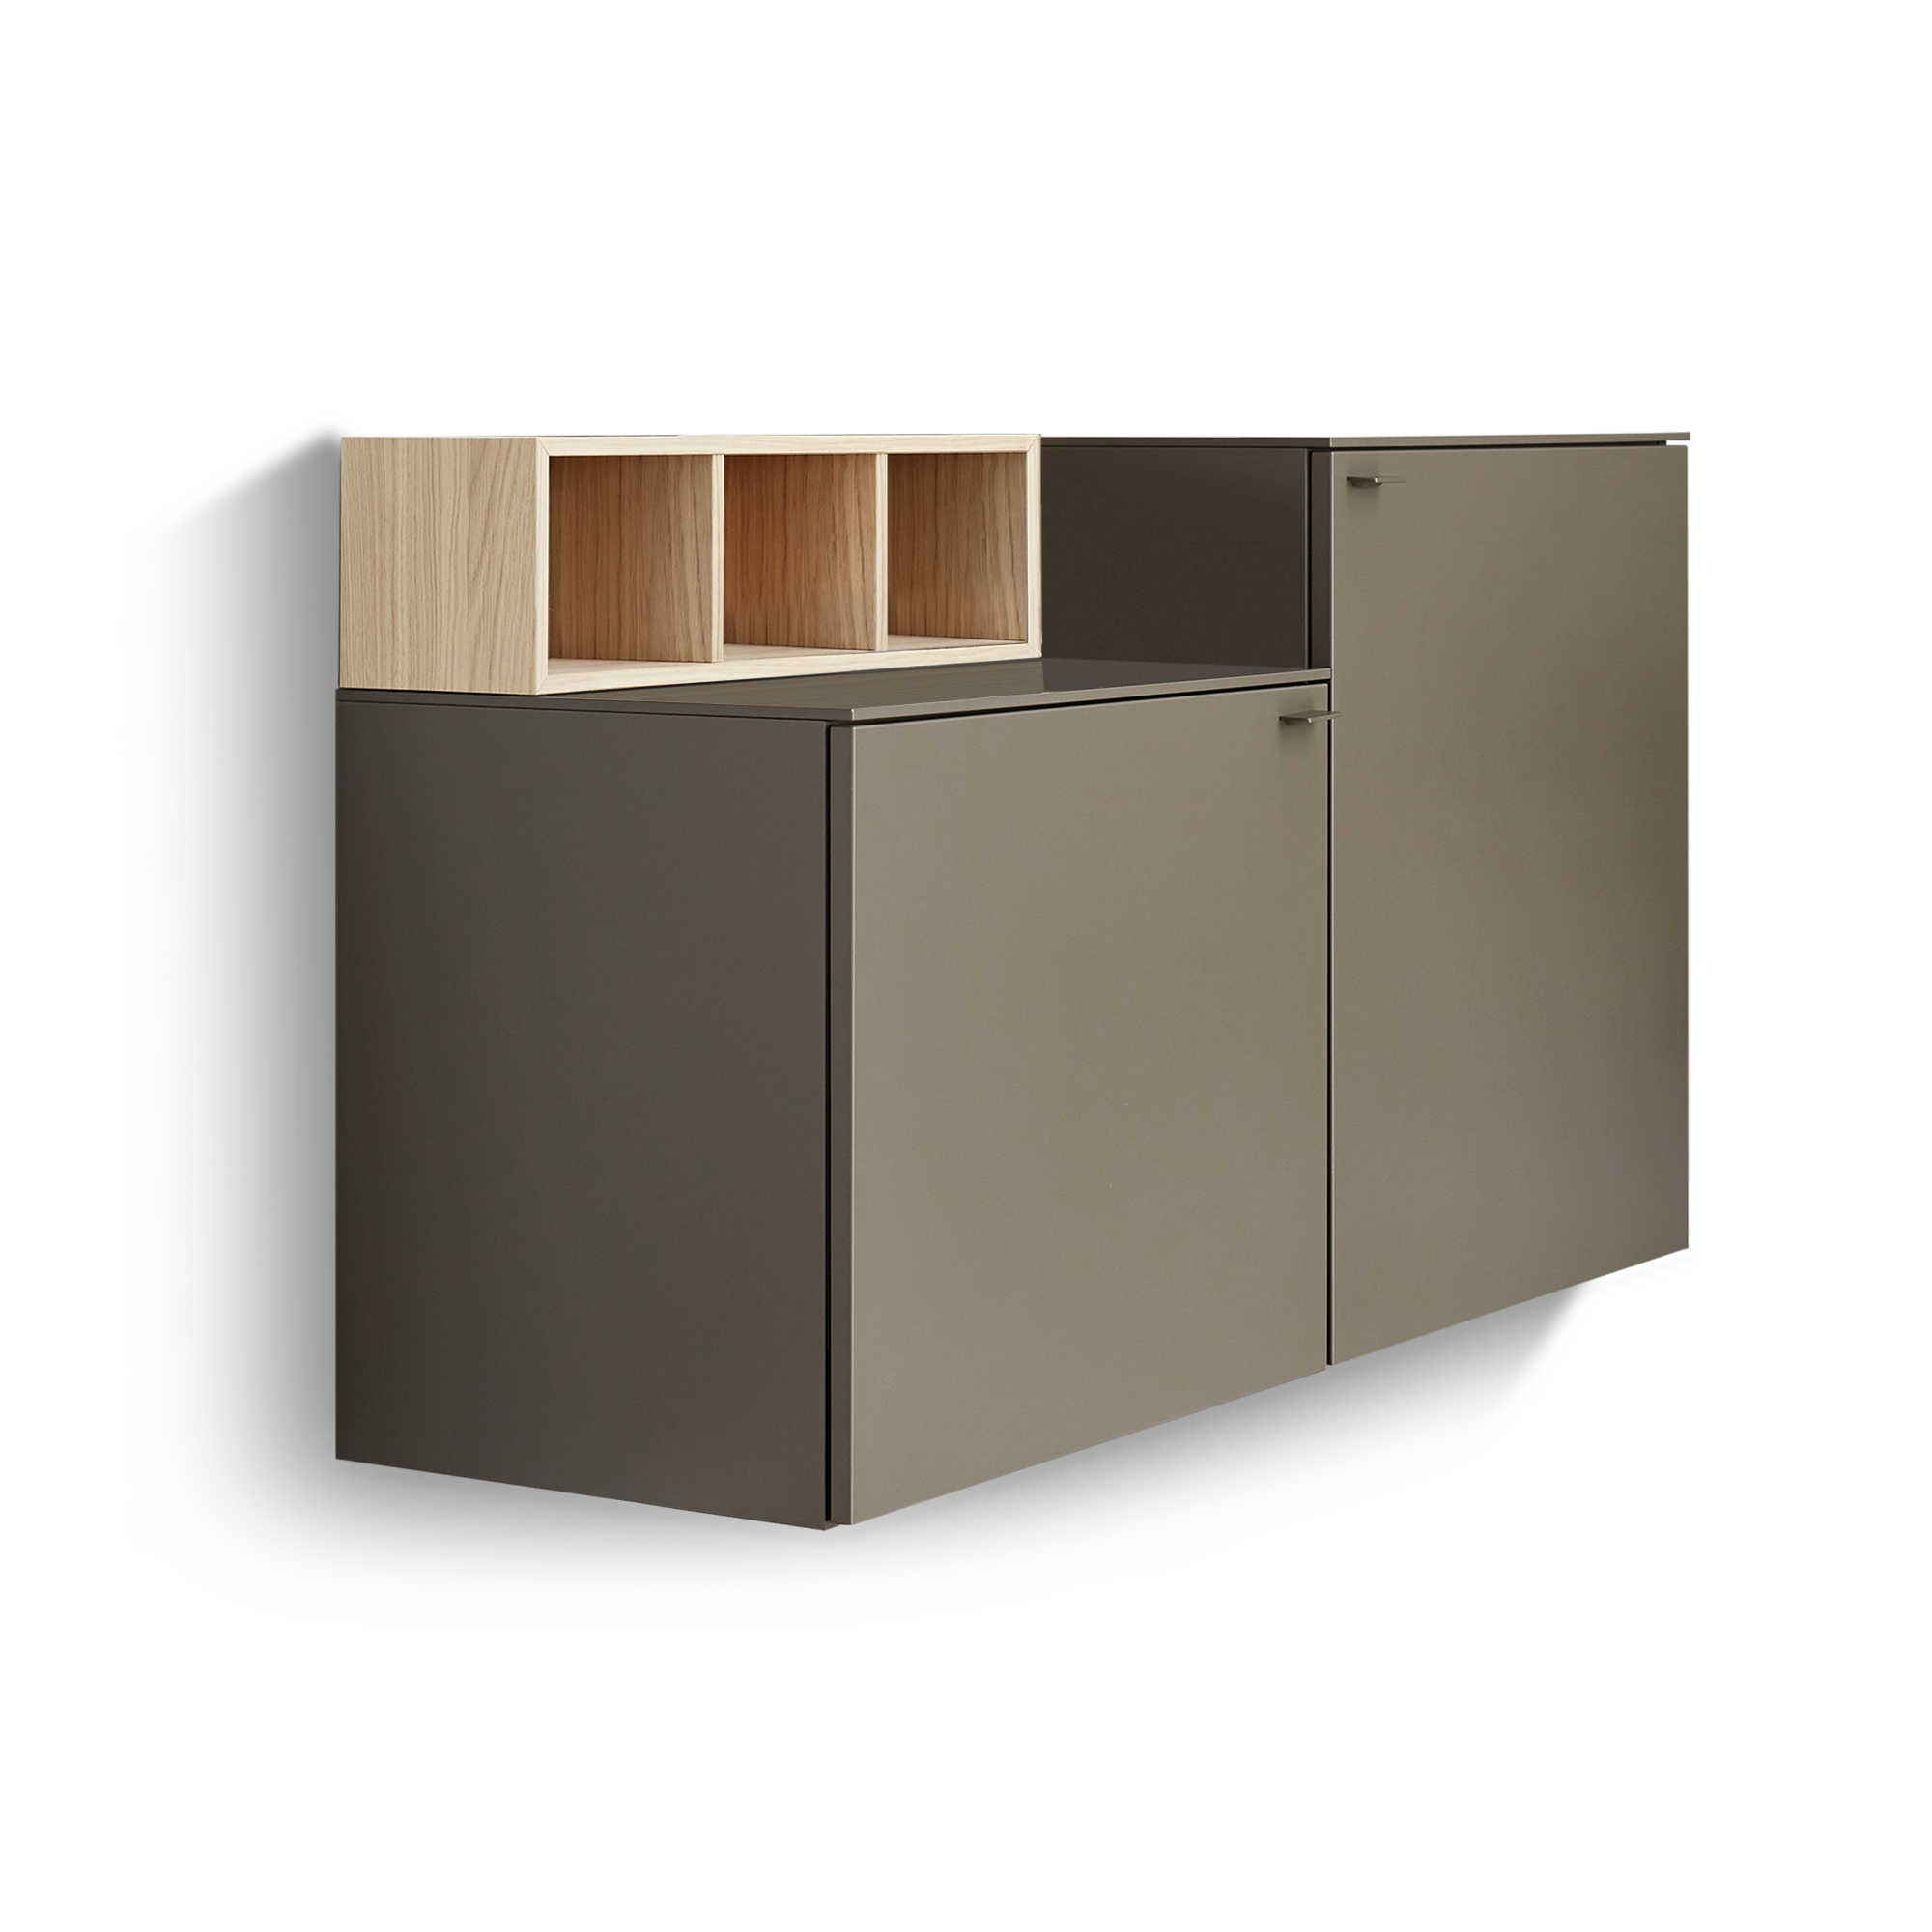 sch ner wohnen sideboard geo s620 grau holz online kaufen bei woonio. Black Bedroom Furniture Sets. Home Design Ideas